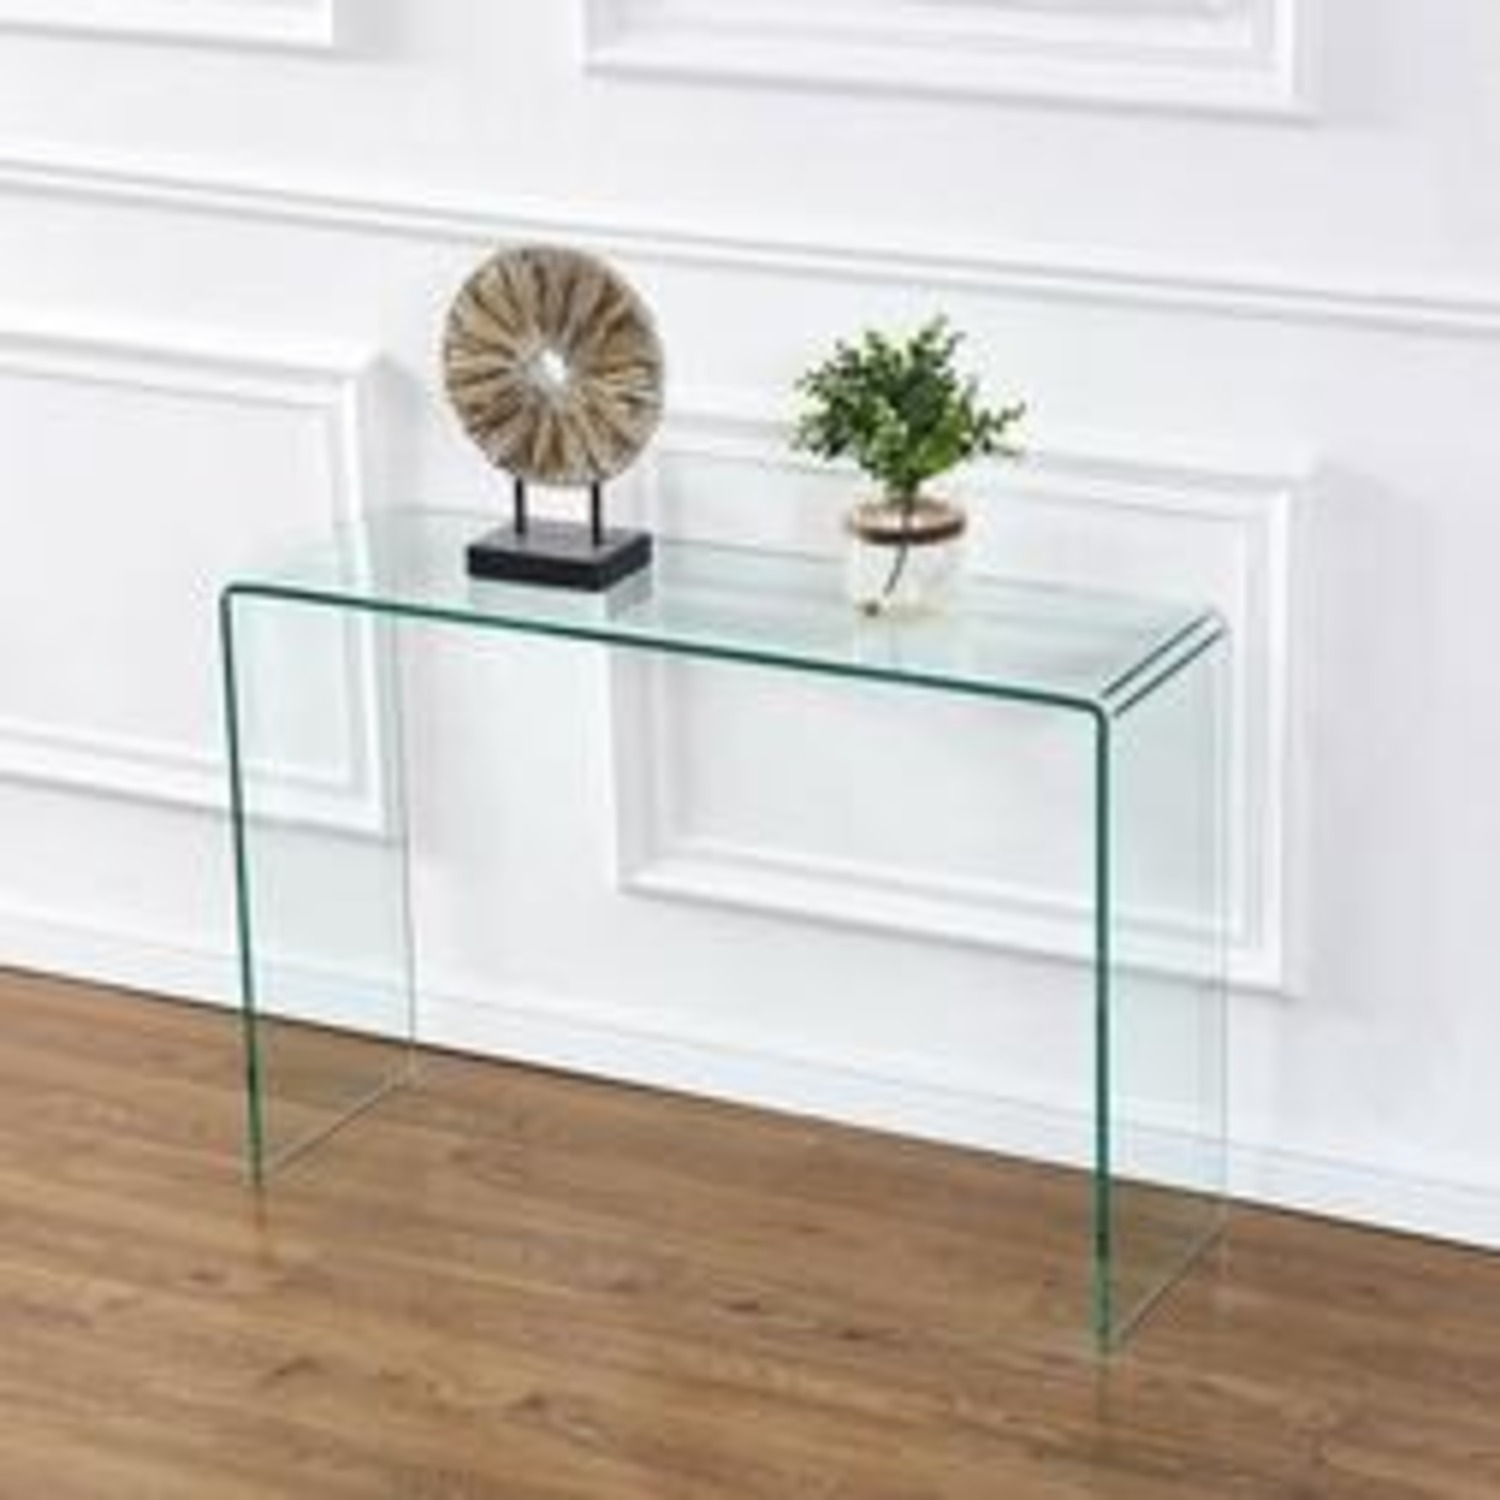 Safavieh Glass Waterfall Console Table Desk - image-1